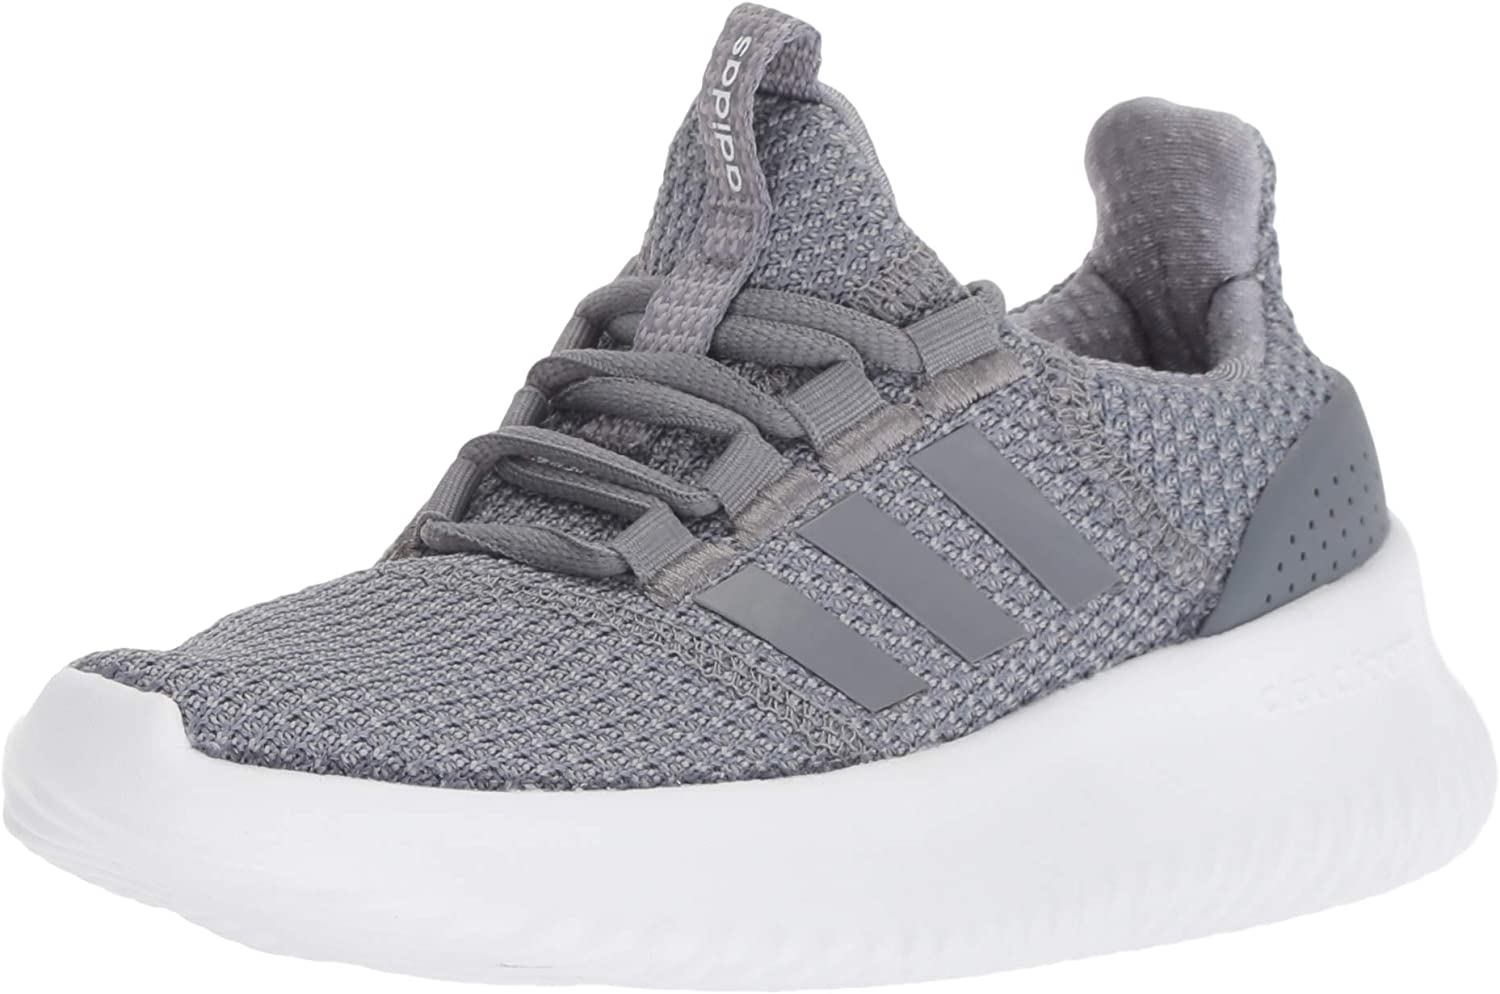 Adidas Womens Cloudfoam Ultimate Low Top Lace Up Running Sneaker